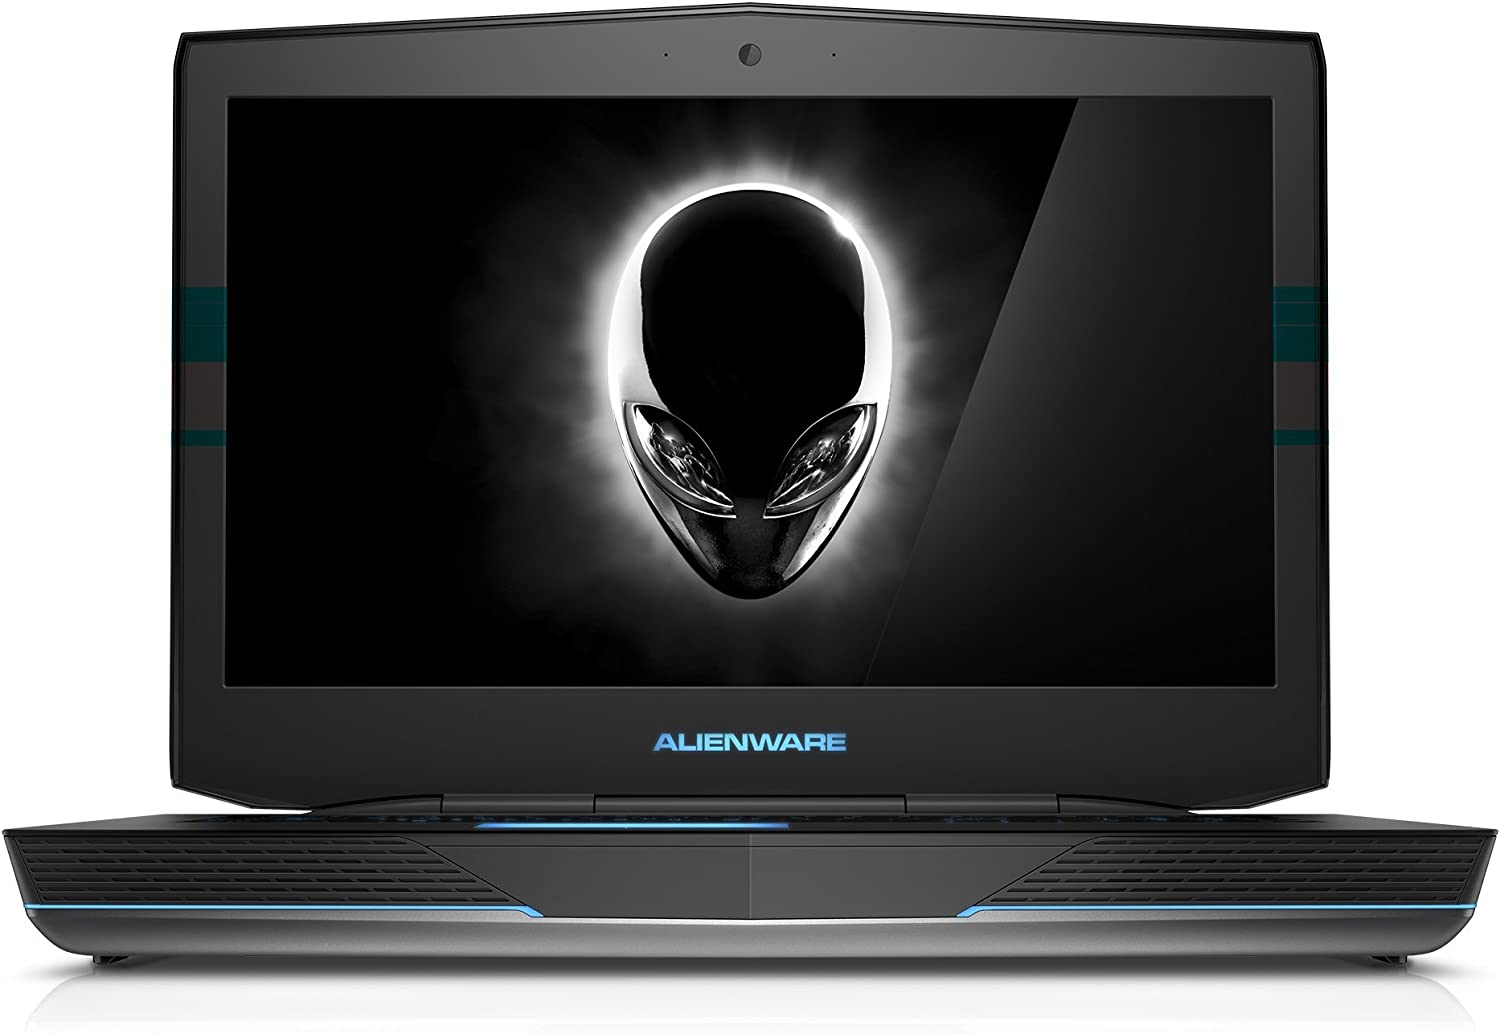 Alienware 18 ALW18-7502sLV 18-Inch Laptop (Silver Anodized Aluminum) [Discontinued By Manufacturer] (Renewed)